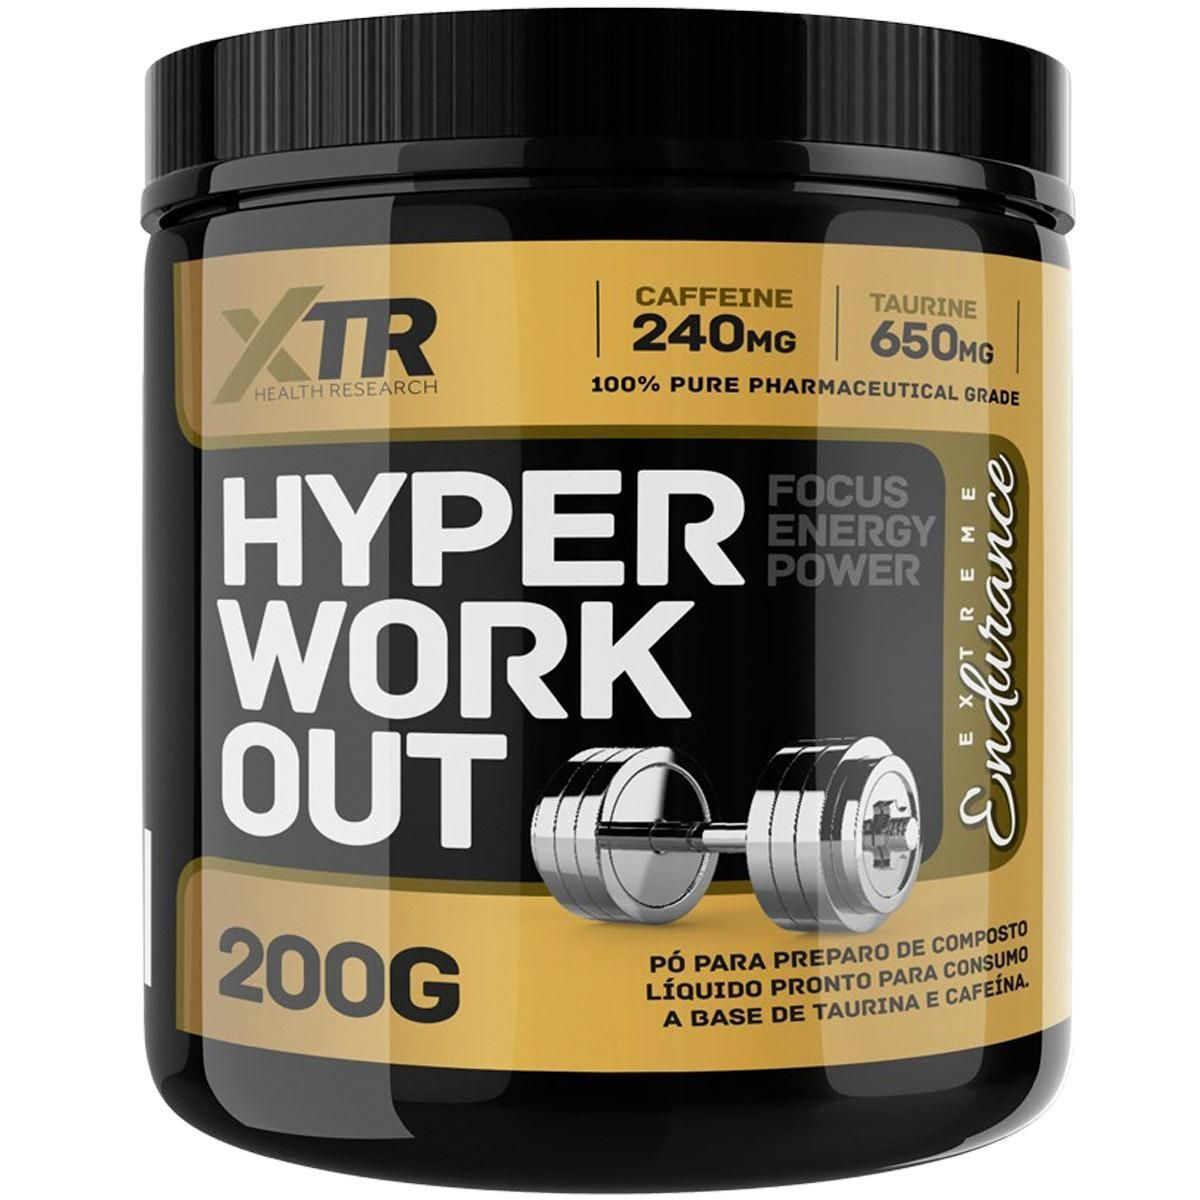 Hyper Workout 200g XTR  - Vitta Gold